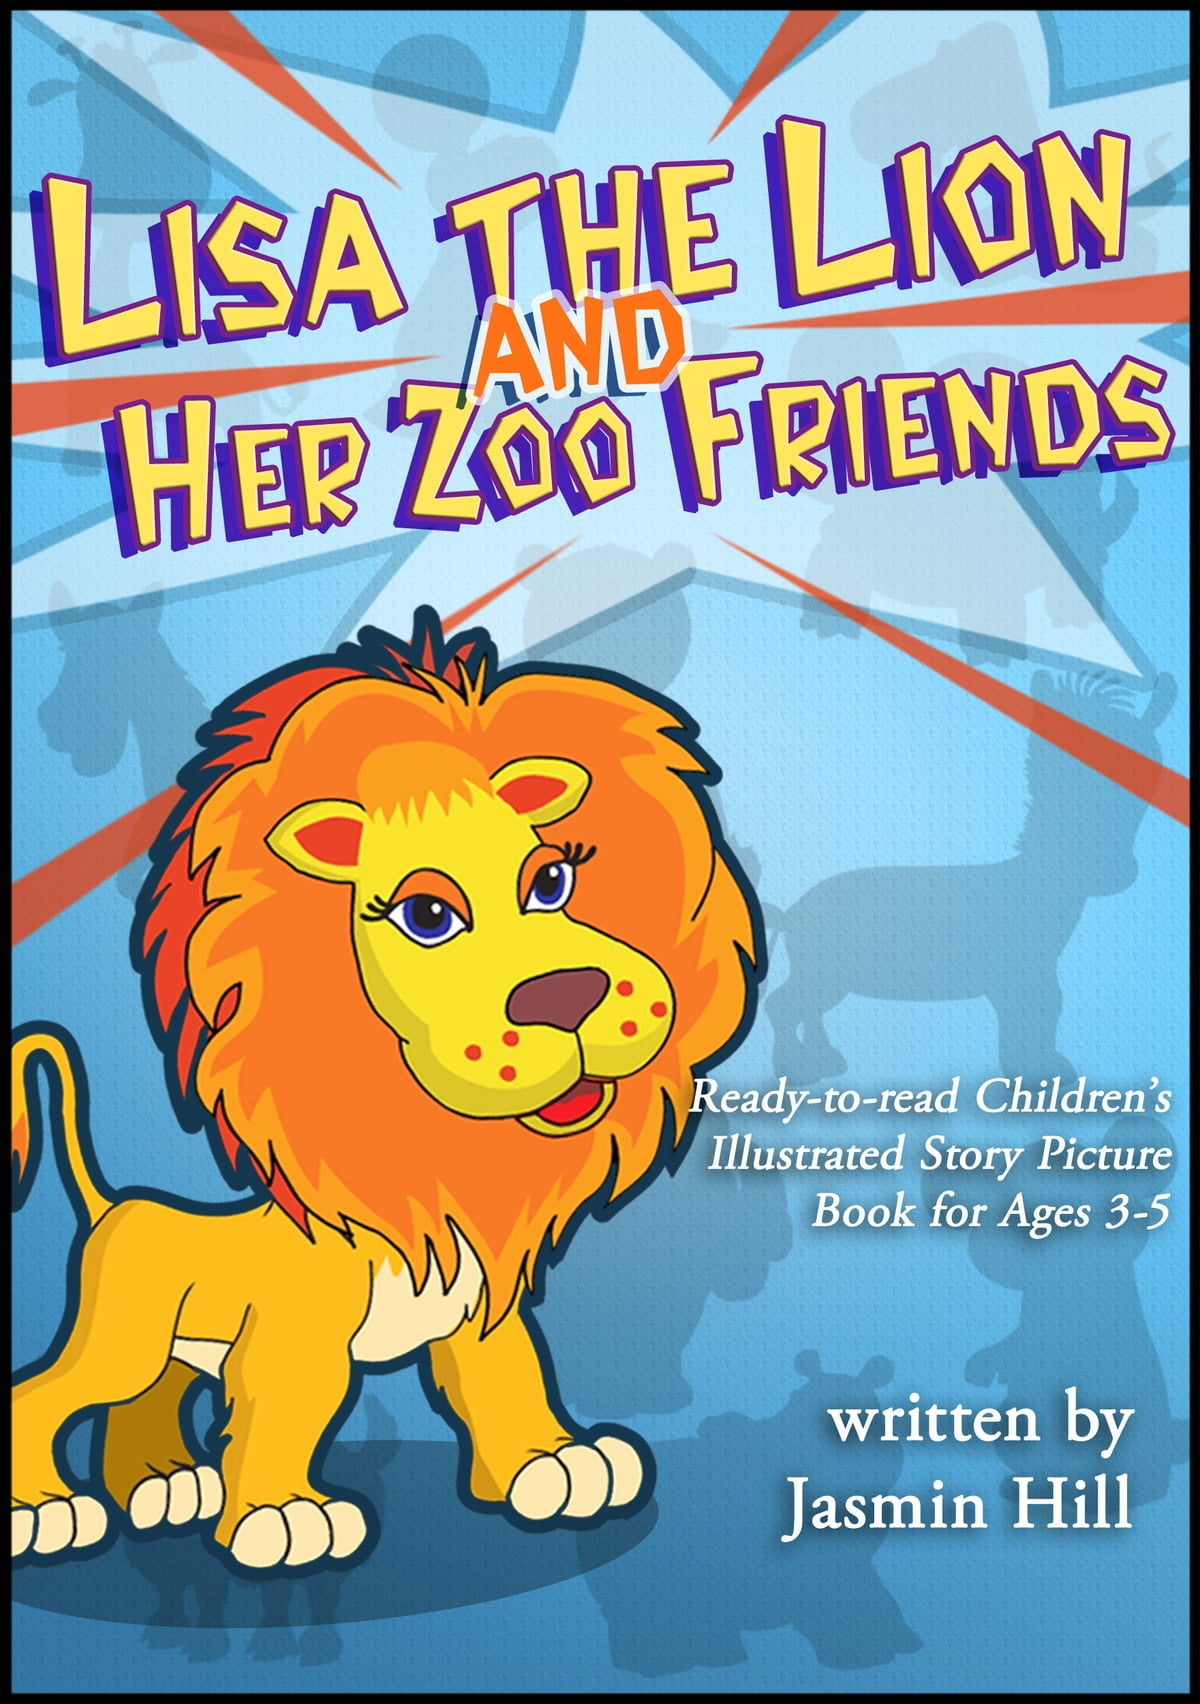 Lisa The Lion's Zoo Friends: Ready To Read Children's Illustrated Story  Picture Book For Ages 3-5 eBook by Jasmin Hill - 9781301101634 | Rakuten  Kobo